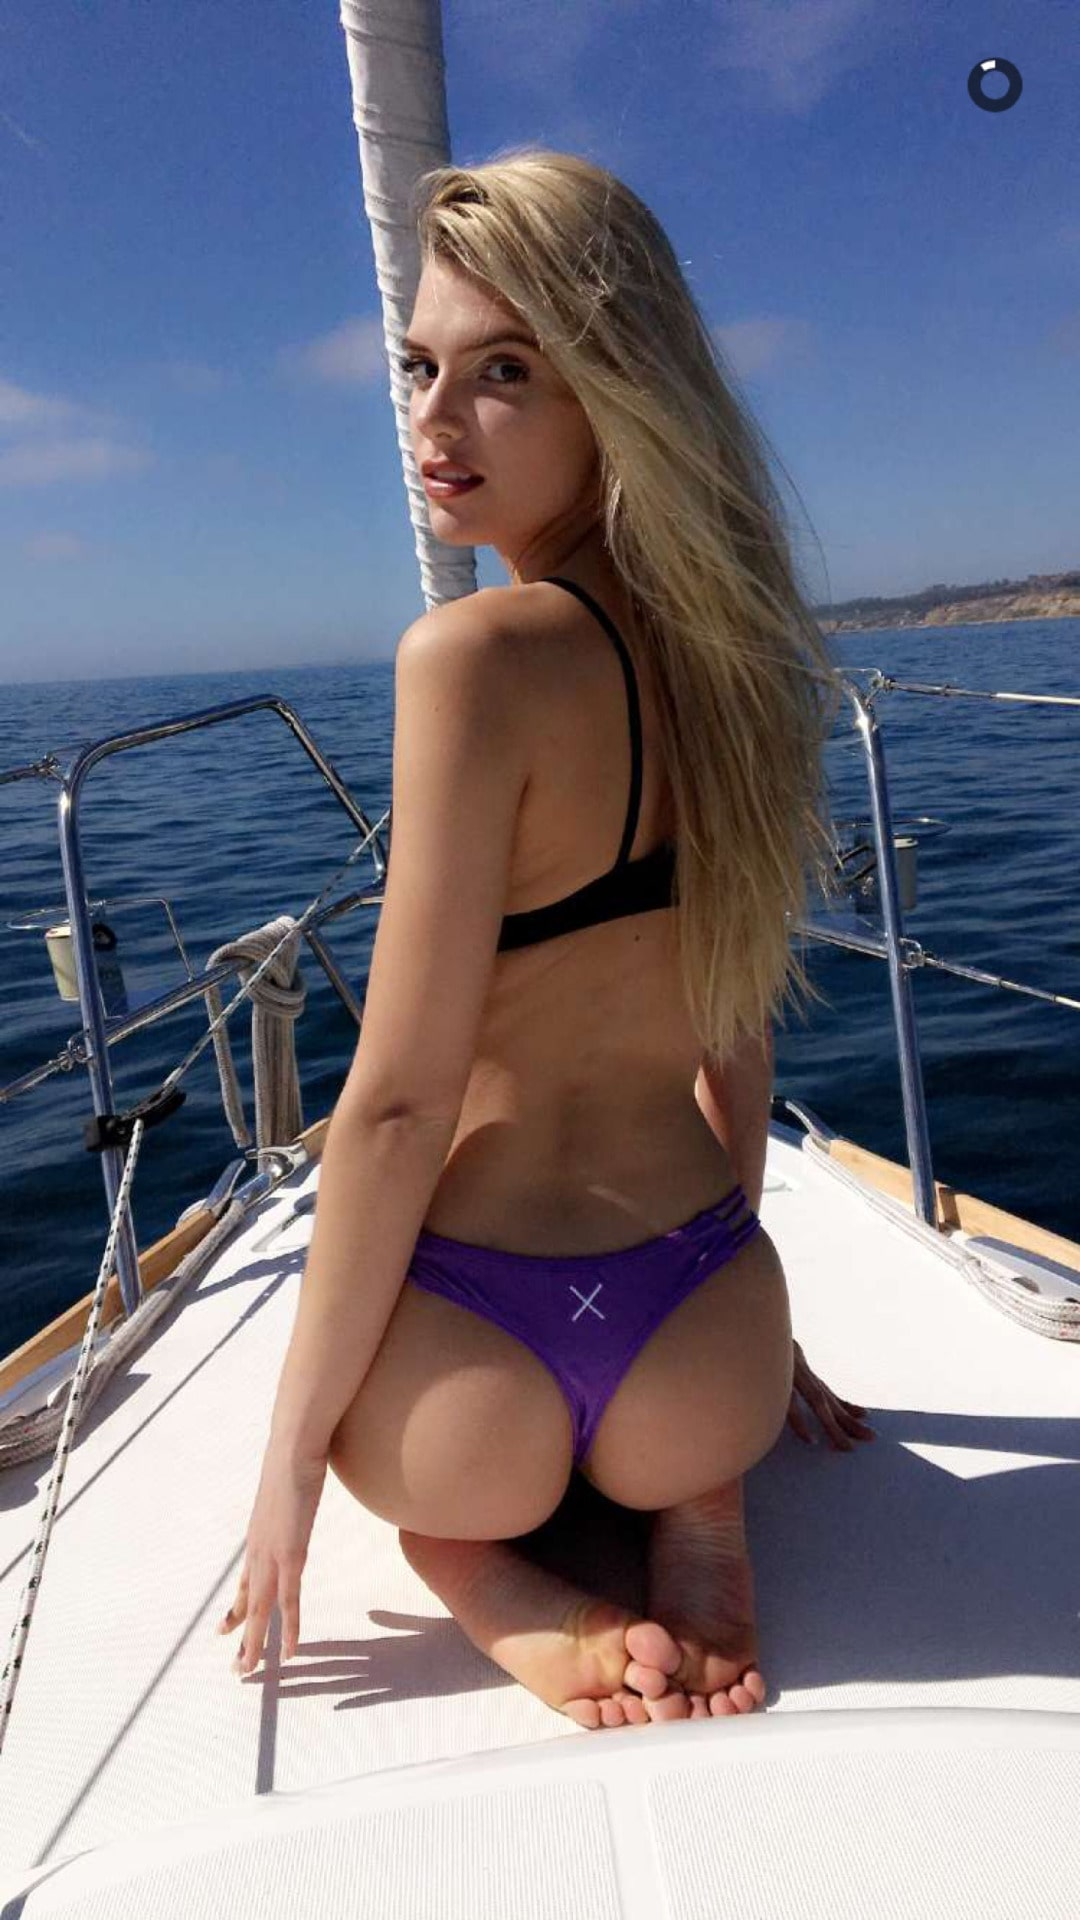 49 Hot Pictures Of Alissa Violet Which Prove She Is The